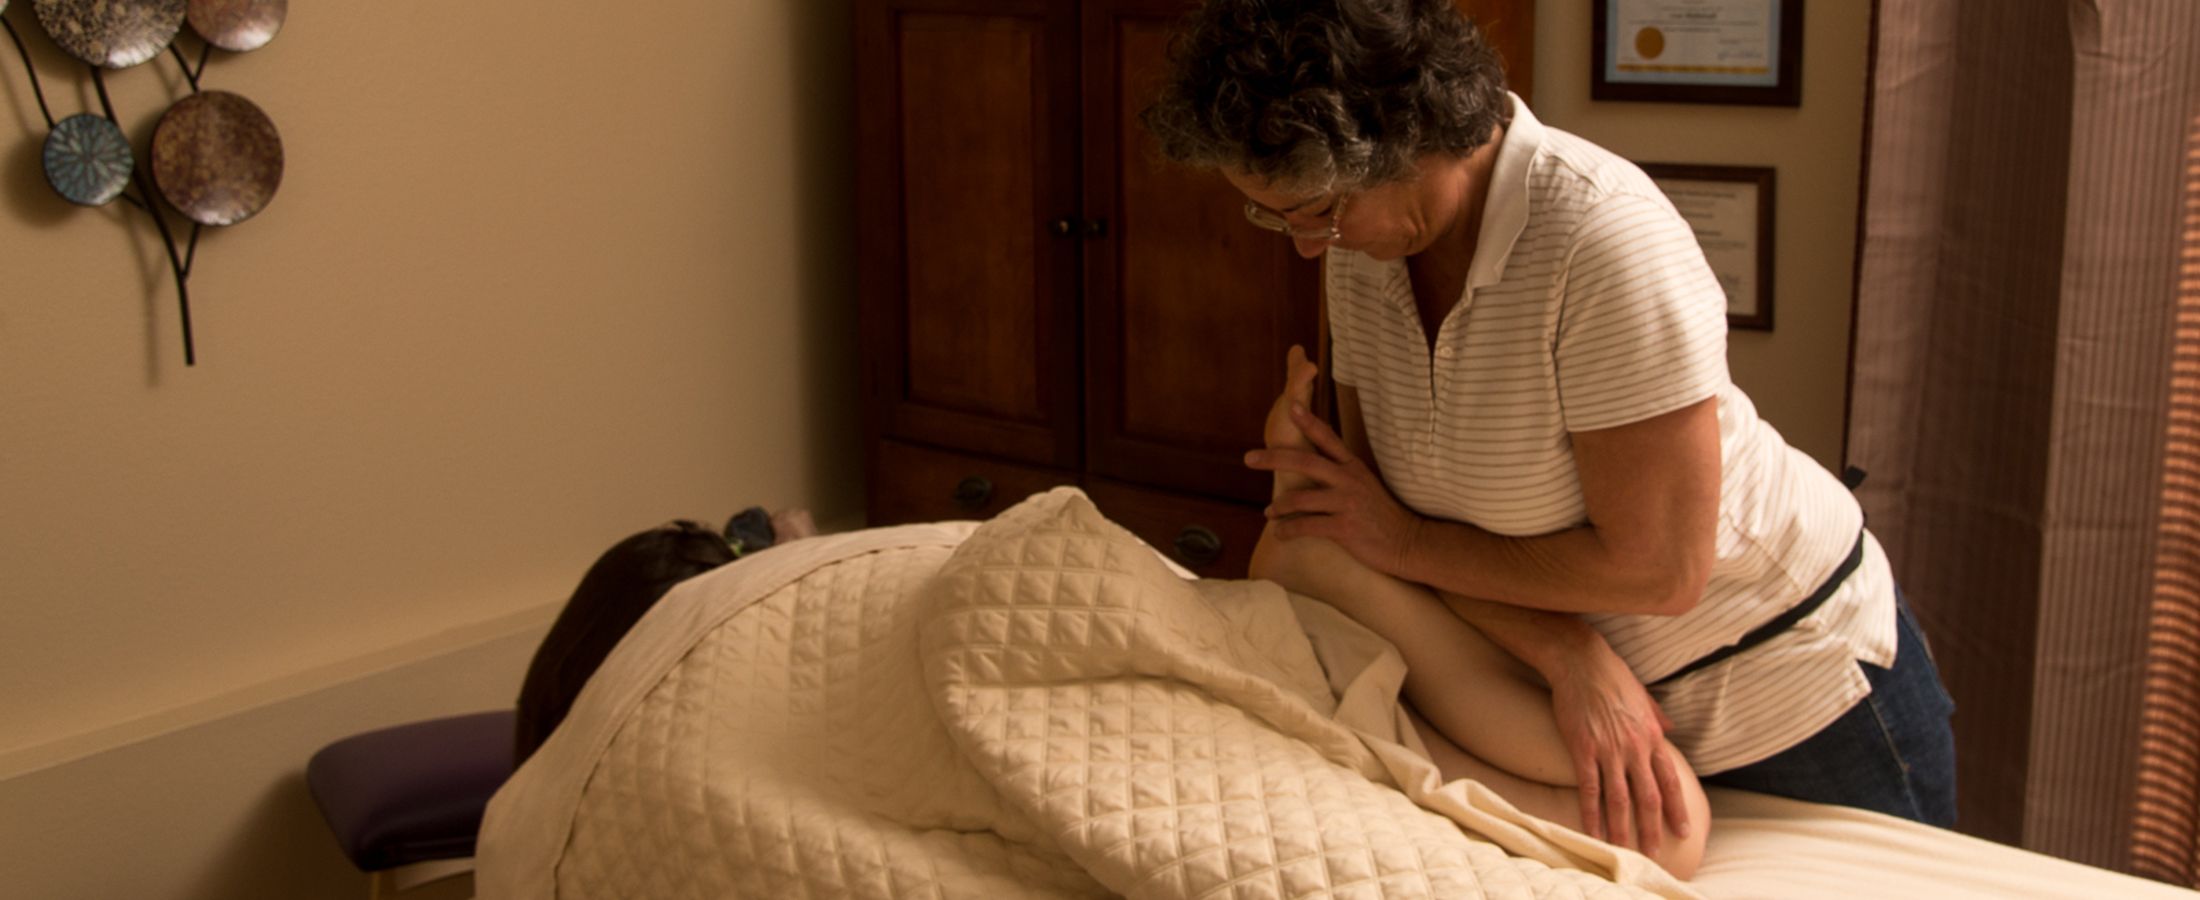 What Are The Benefits Of Lomi Lomi Massage